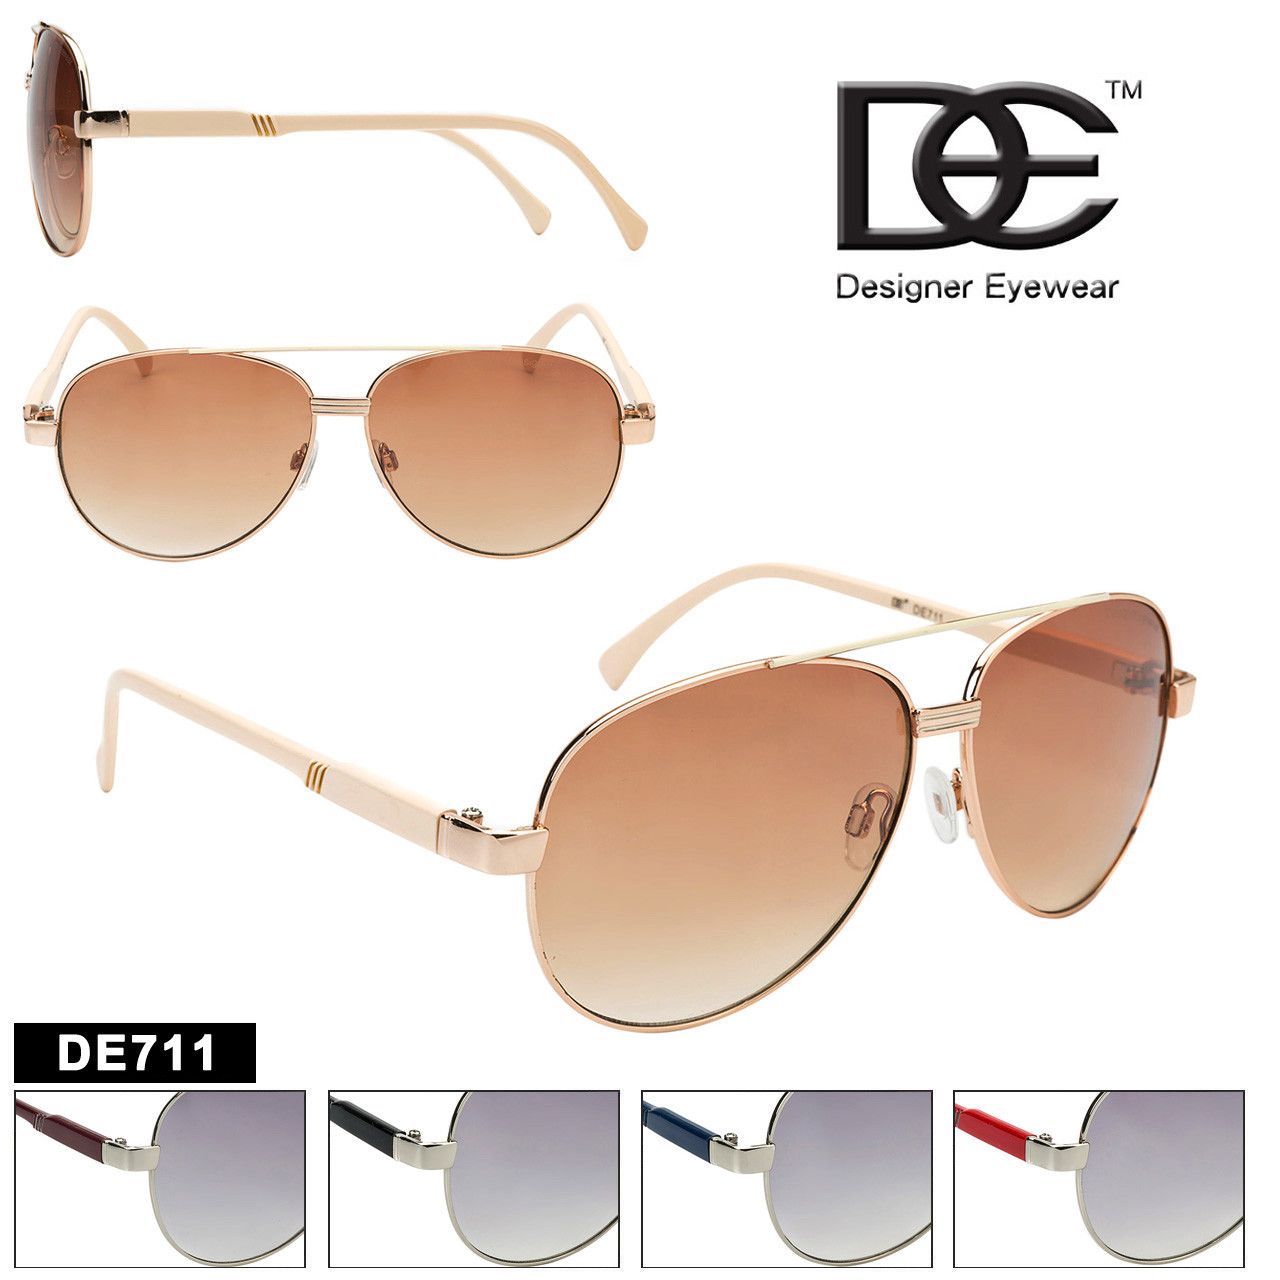 DE™ Aviator Sunglasses by the Dozen - Style #DE711